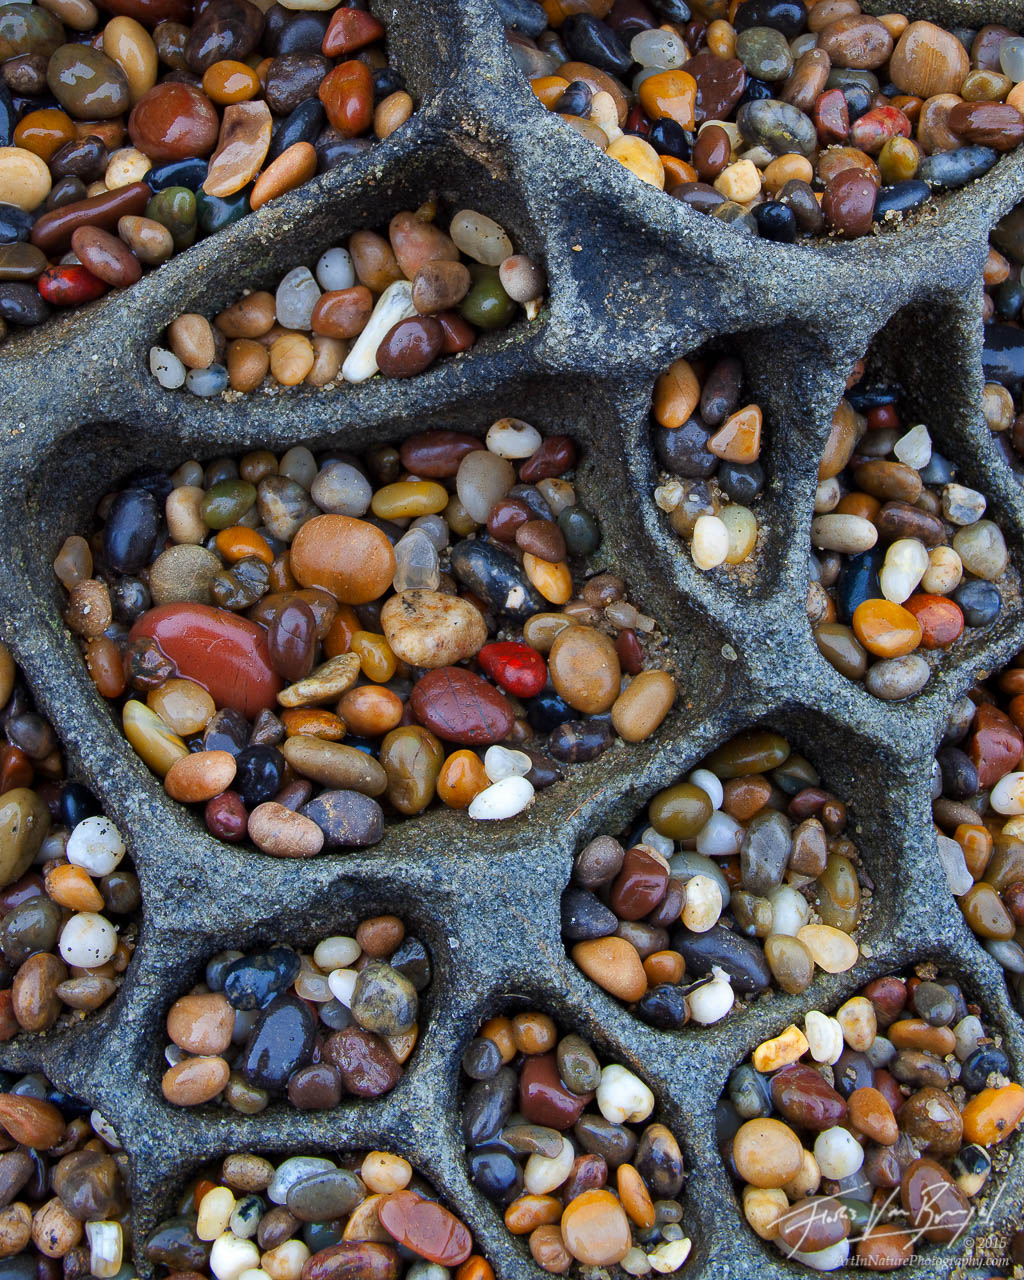 Pebbles in Tafoni, Santa Cruz, California, coast, photo